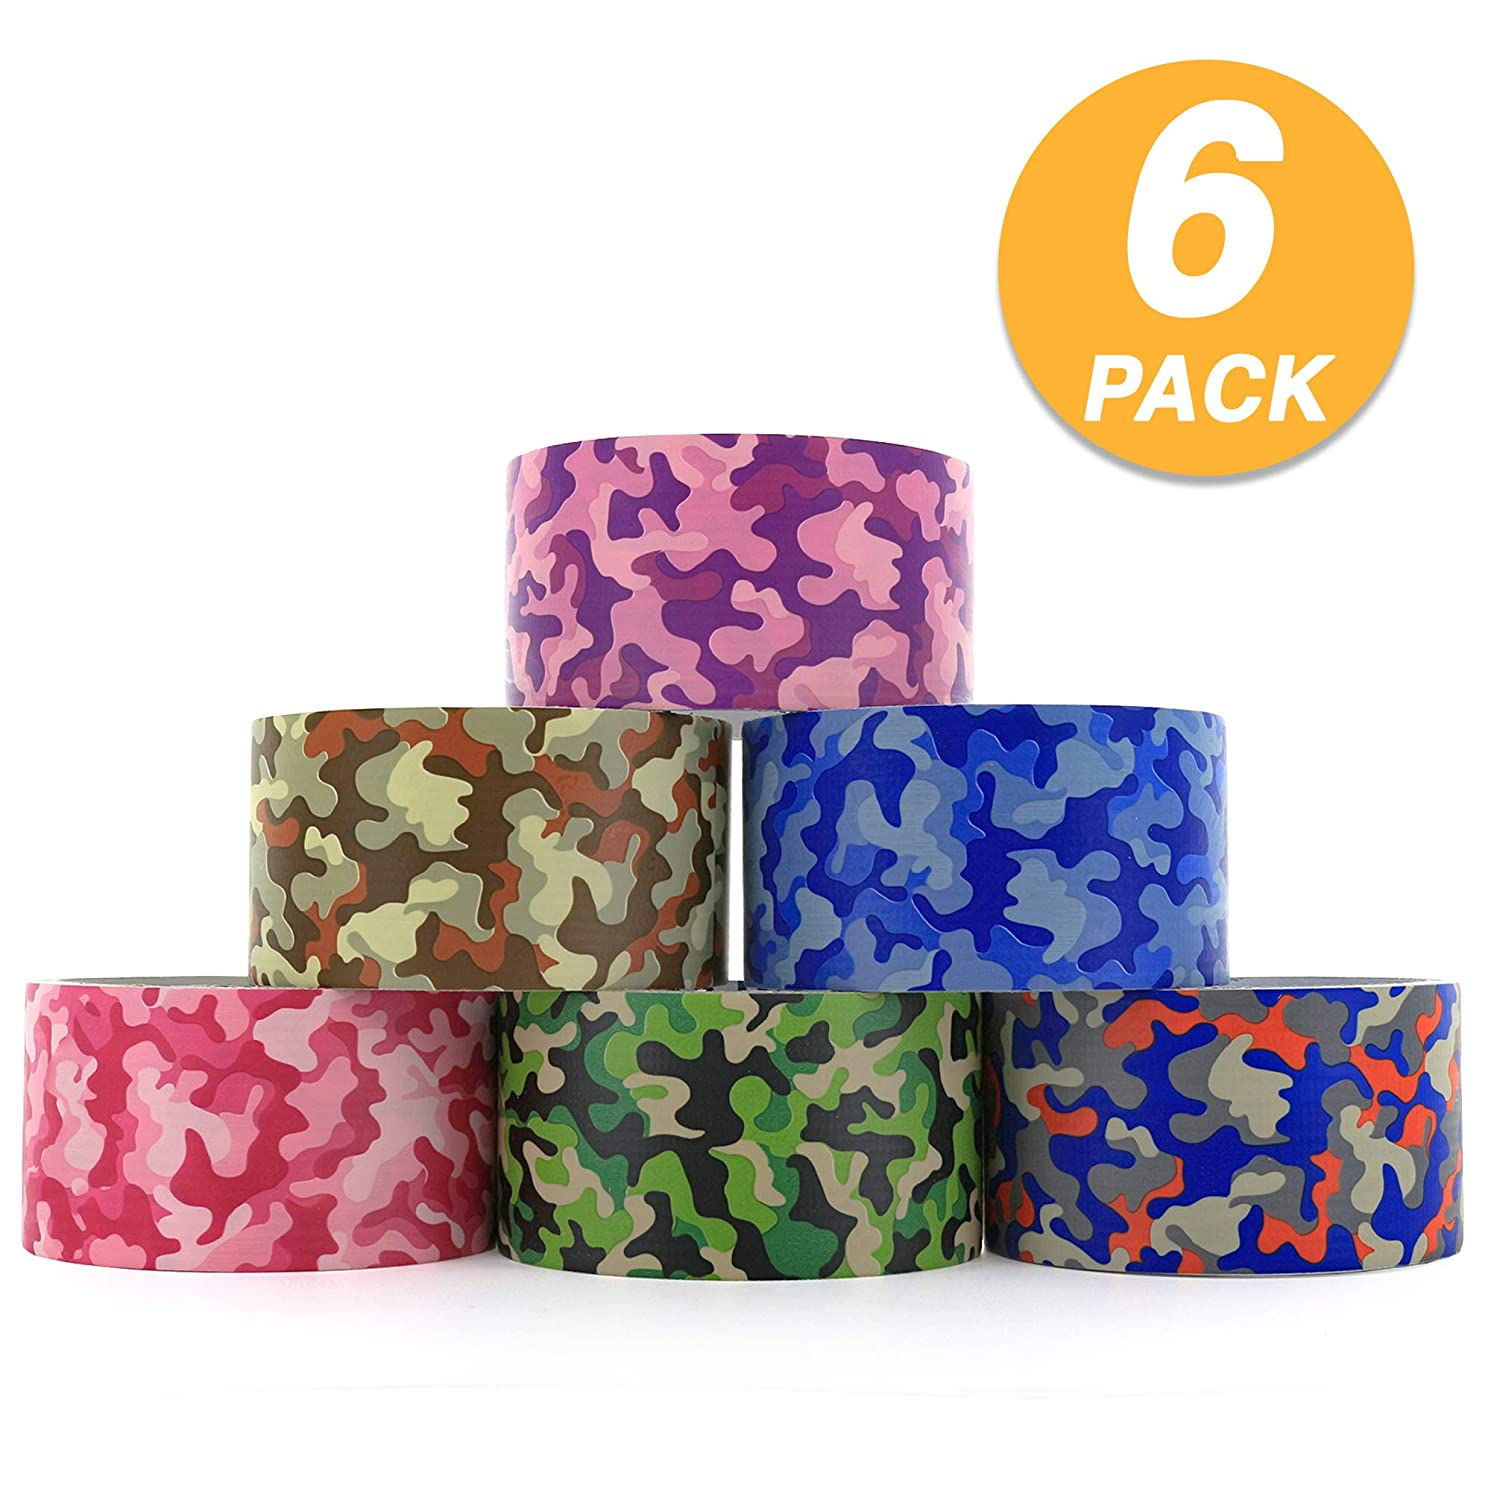 RAM-PRO Camouflage Series Heavy-Duty Duct Tape   Assorted Colors Pack of 6 Rolls, 1.88-inch x 5 Yard – Colors Included: Blue/Orange/Green, Brown/Grey, Green, Blue, Purple, Pink.